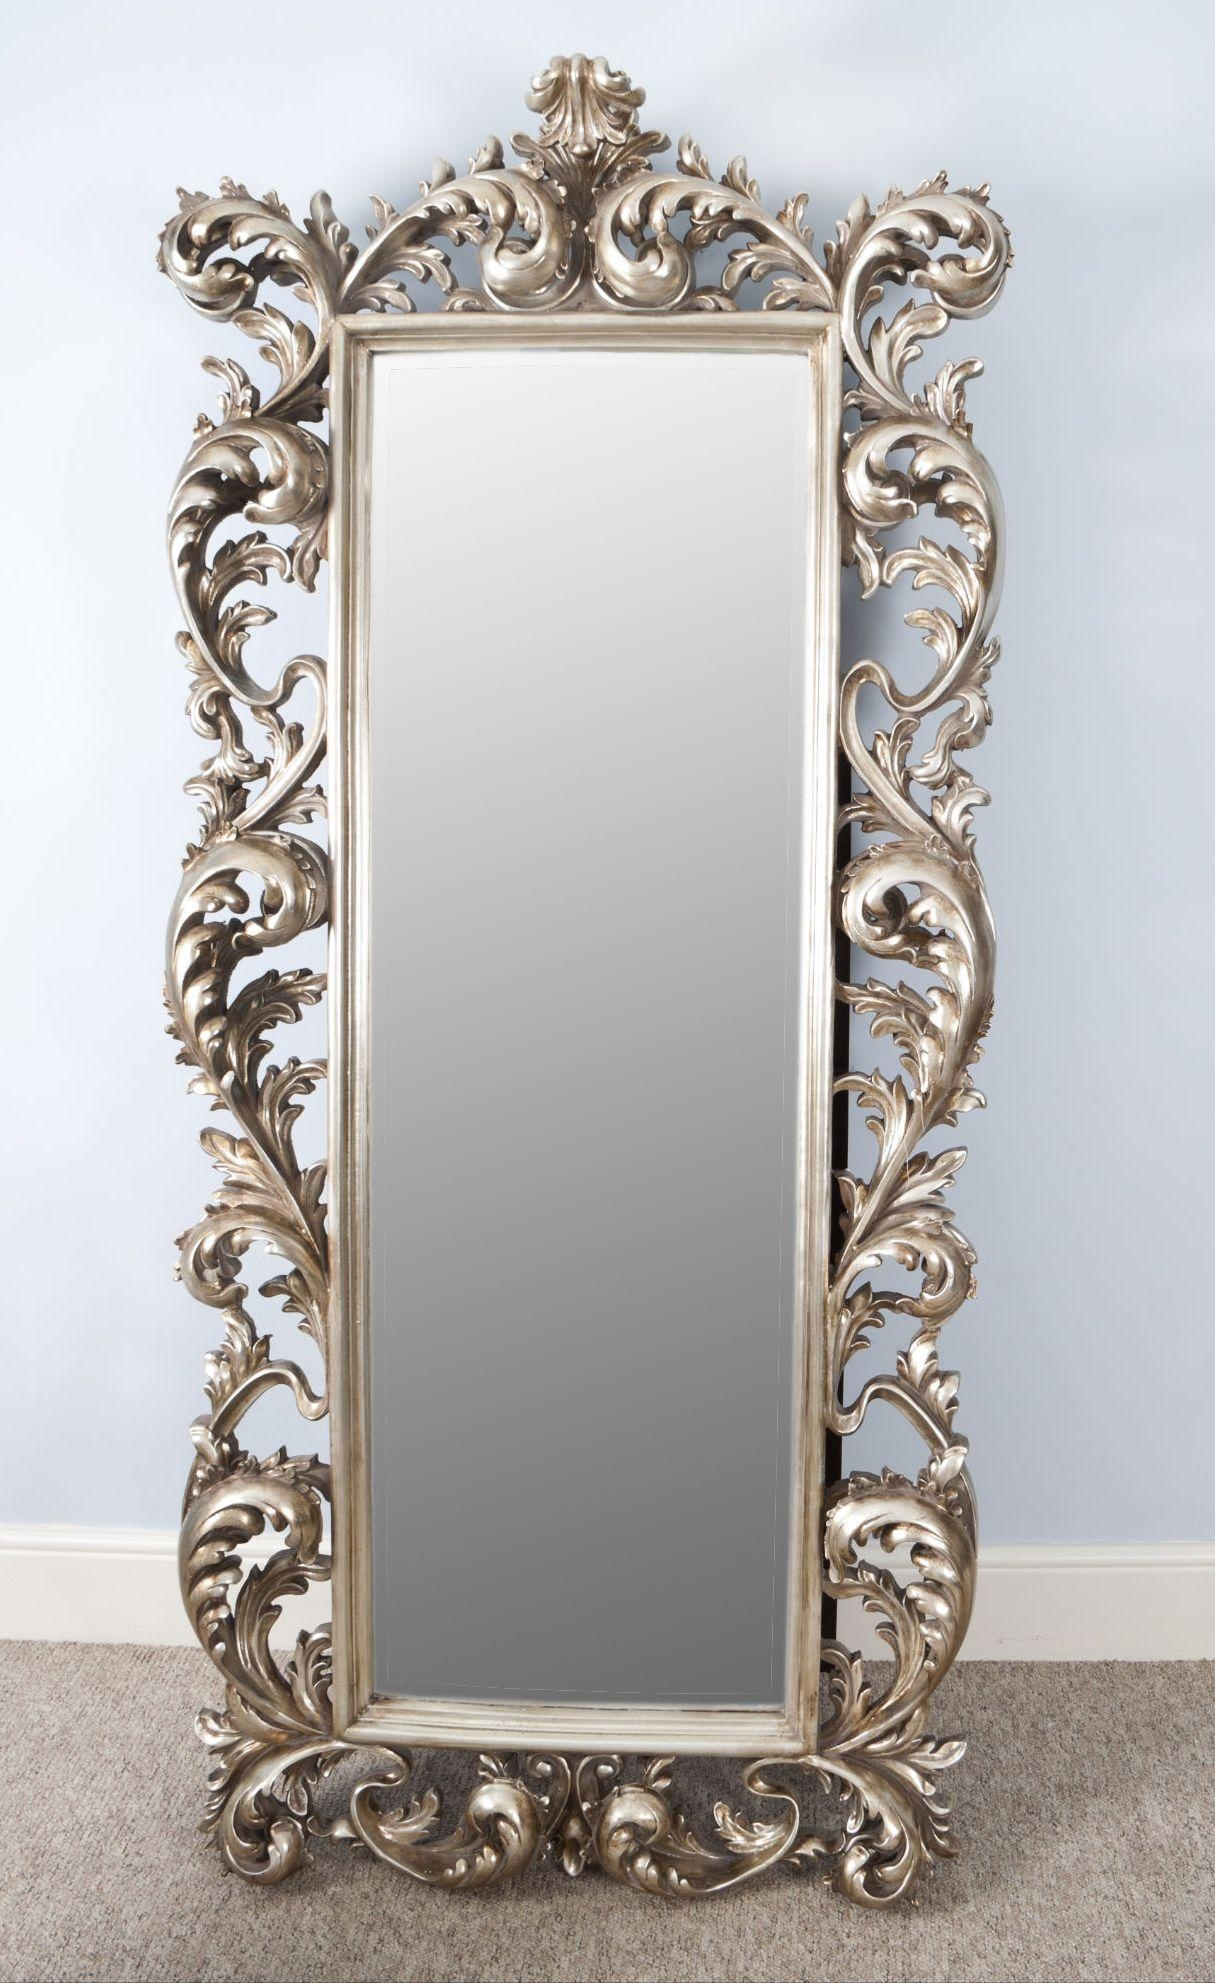 Old Fashioned Wall Mirrors Antique Mirror Wall Covering Vintage Within Silver Antique Mirror (Image 16 of 20)